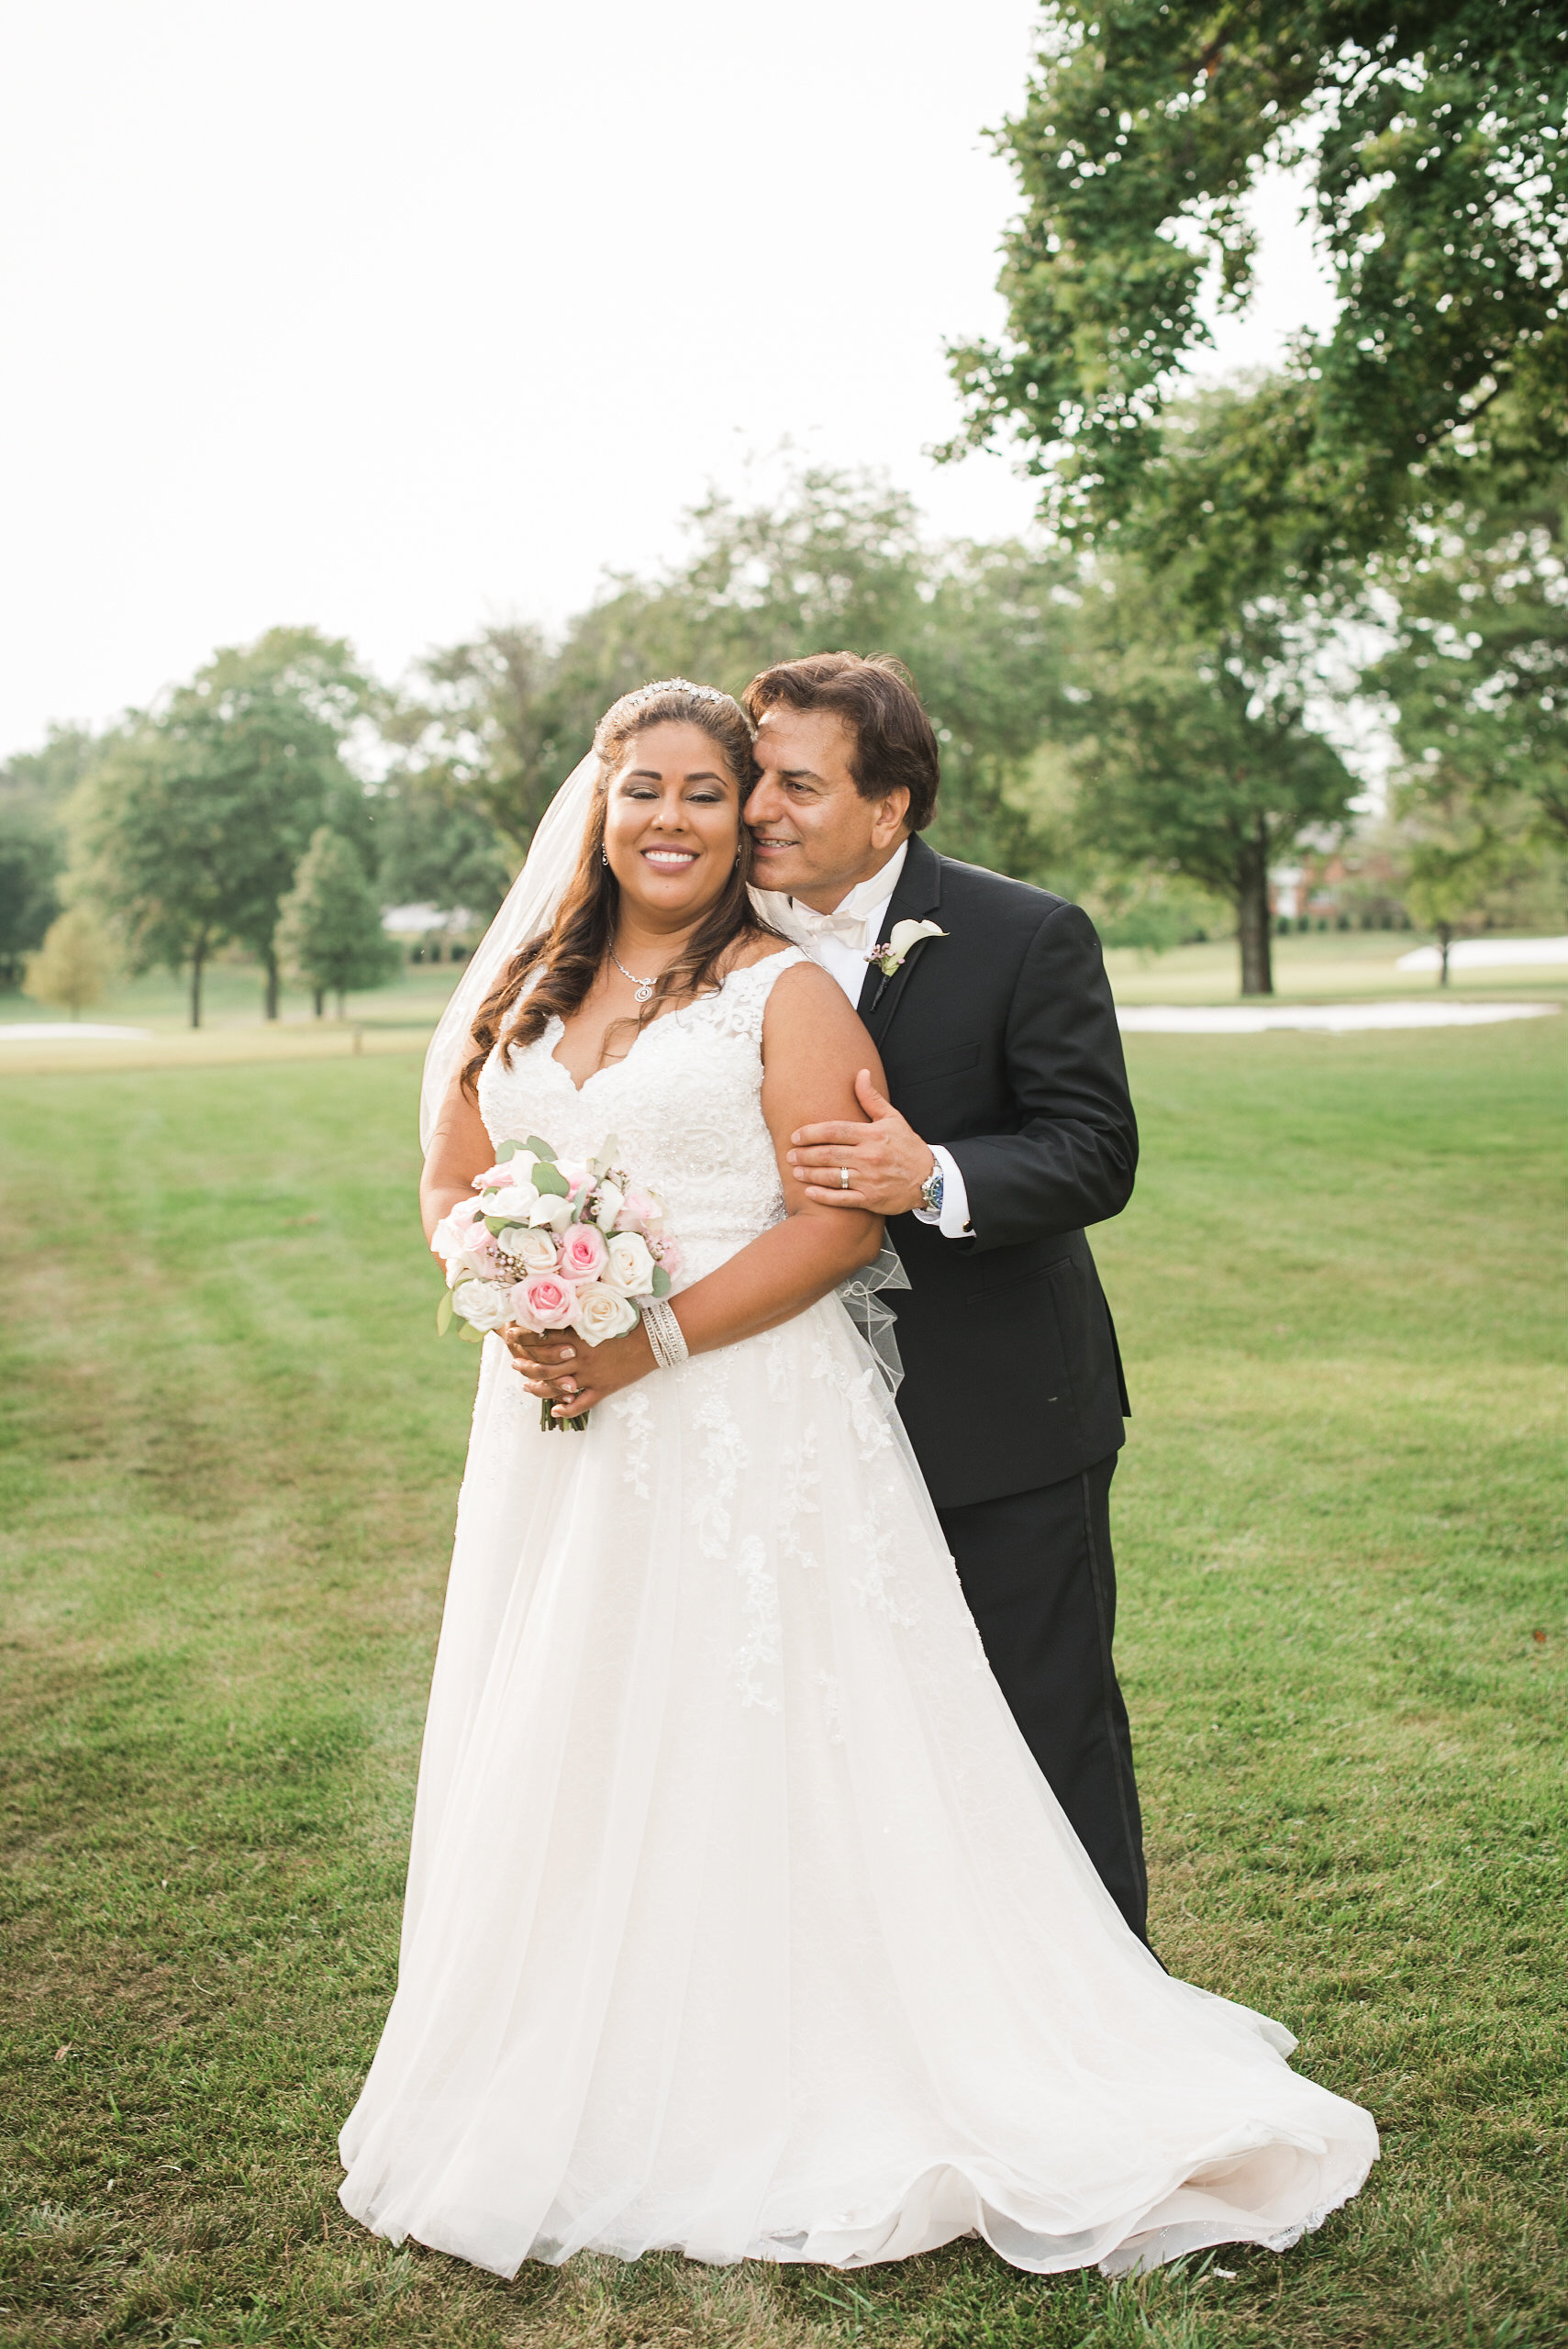 Bride and groom posing on grass